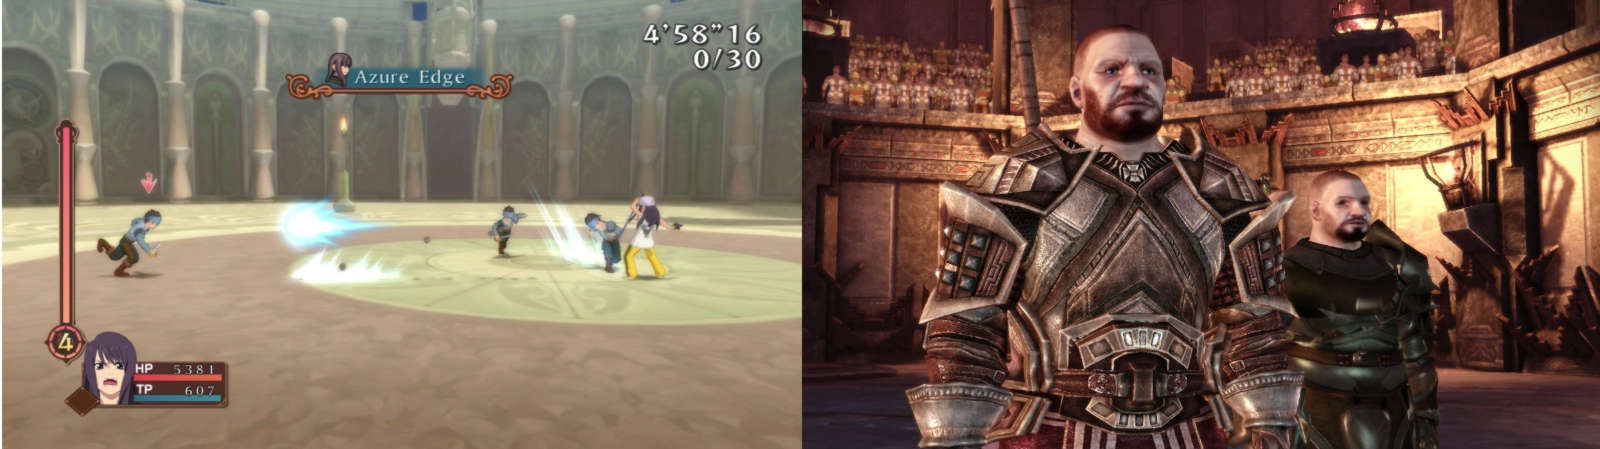 Image showing gladiator levels from Tales of Vesperia and DAO